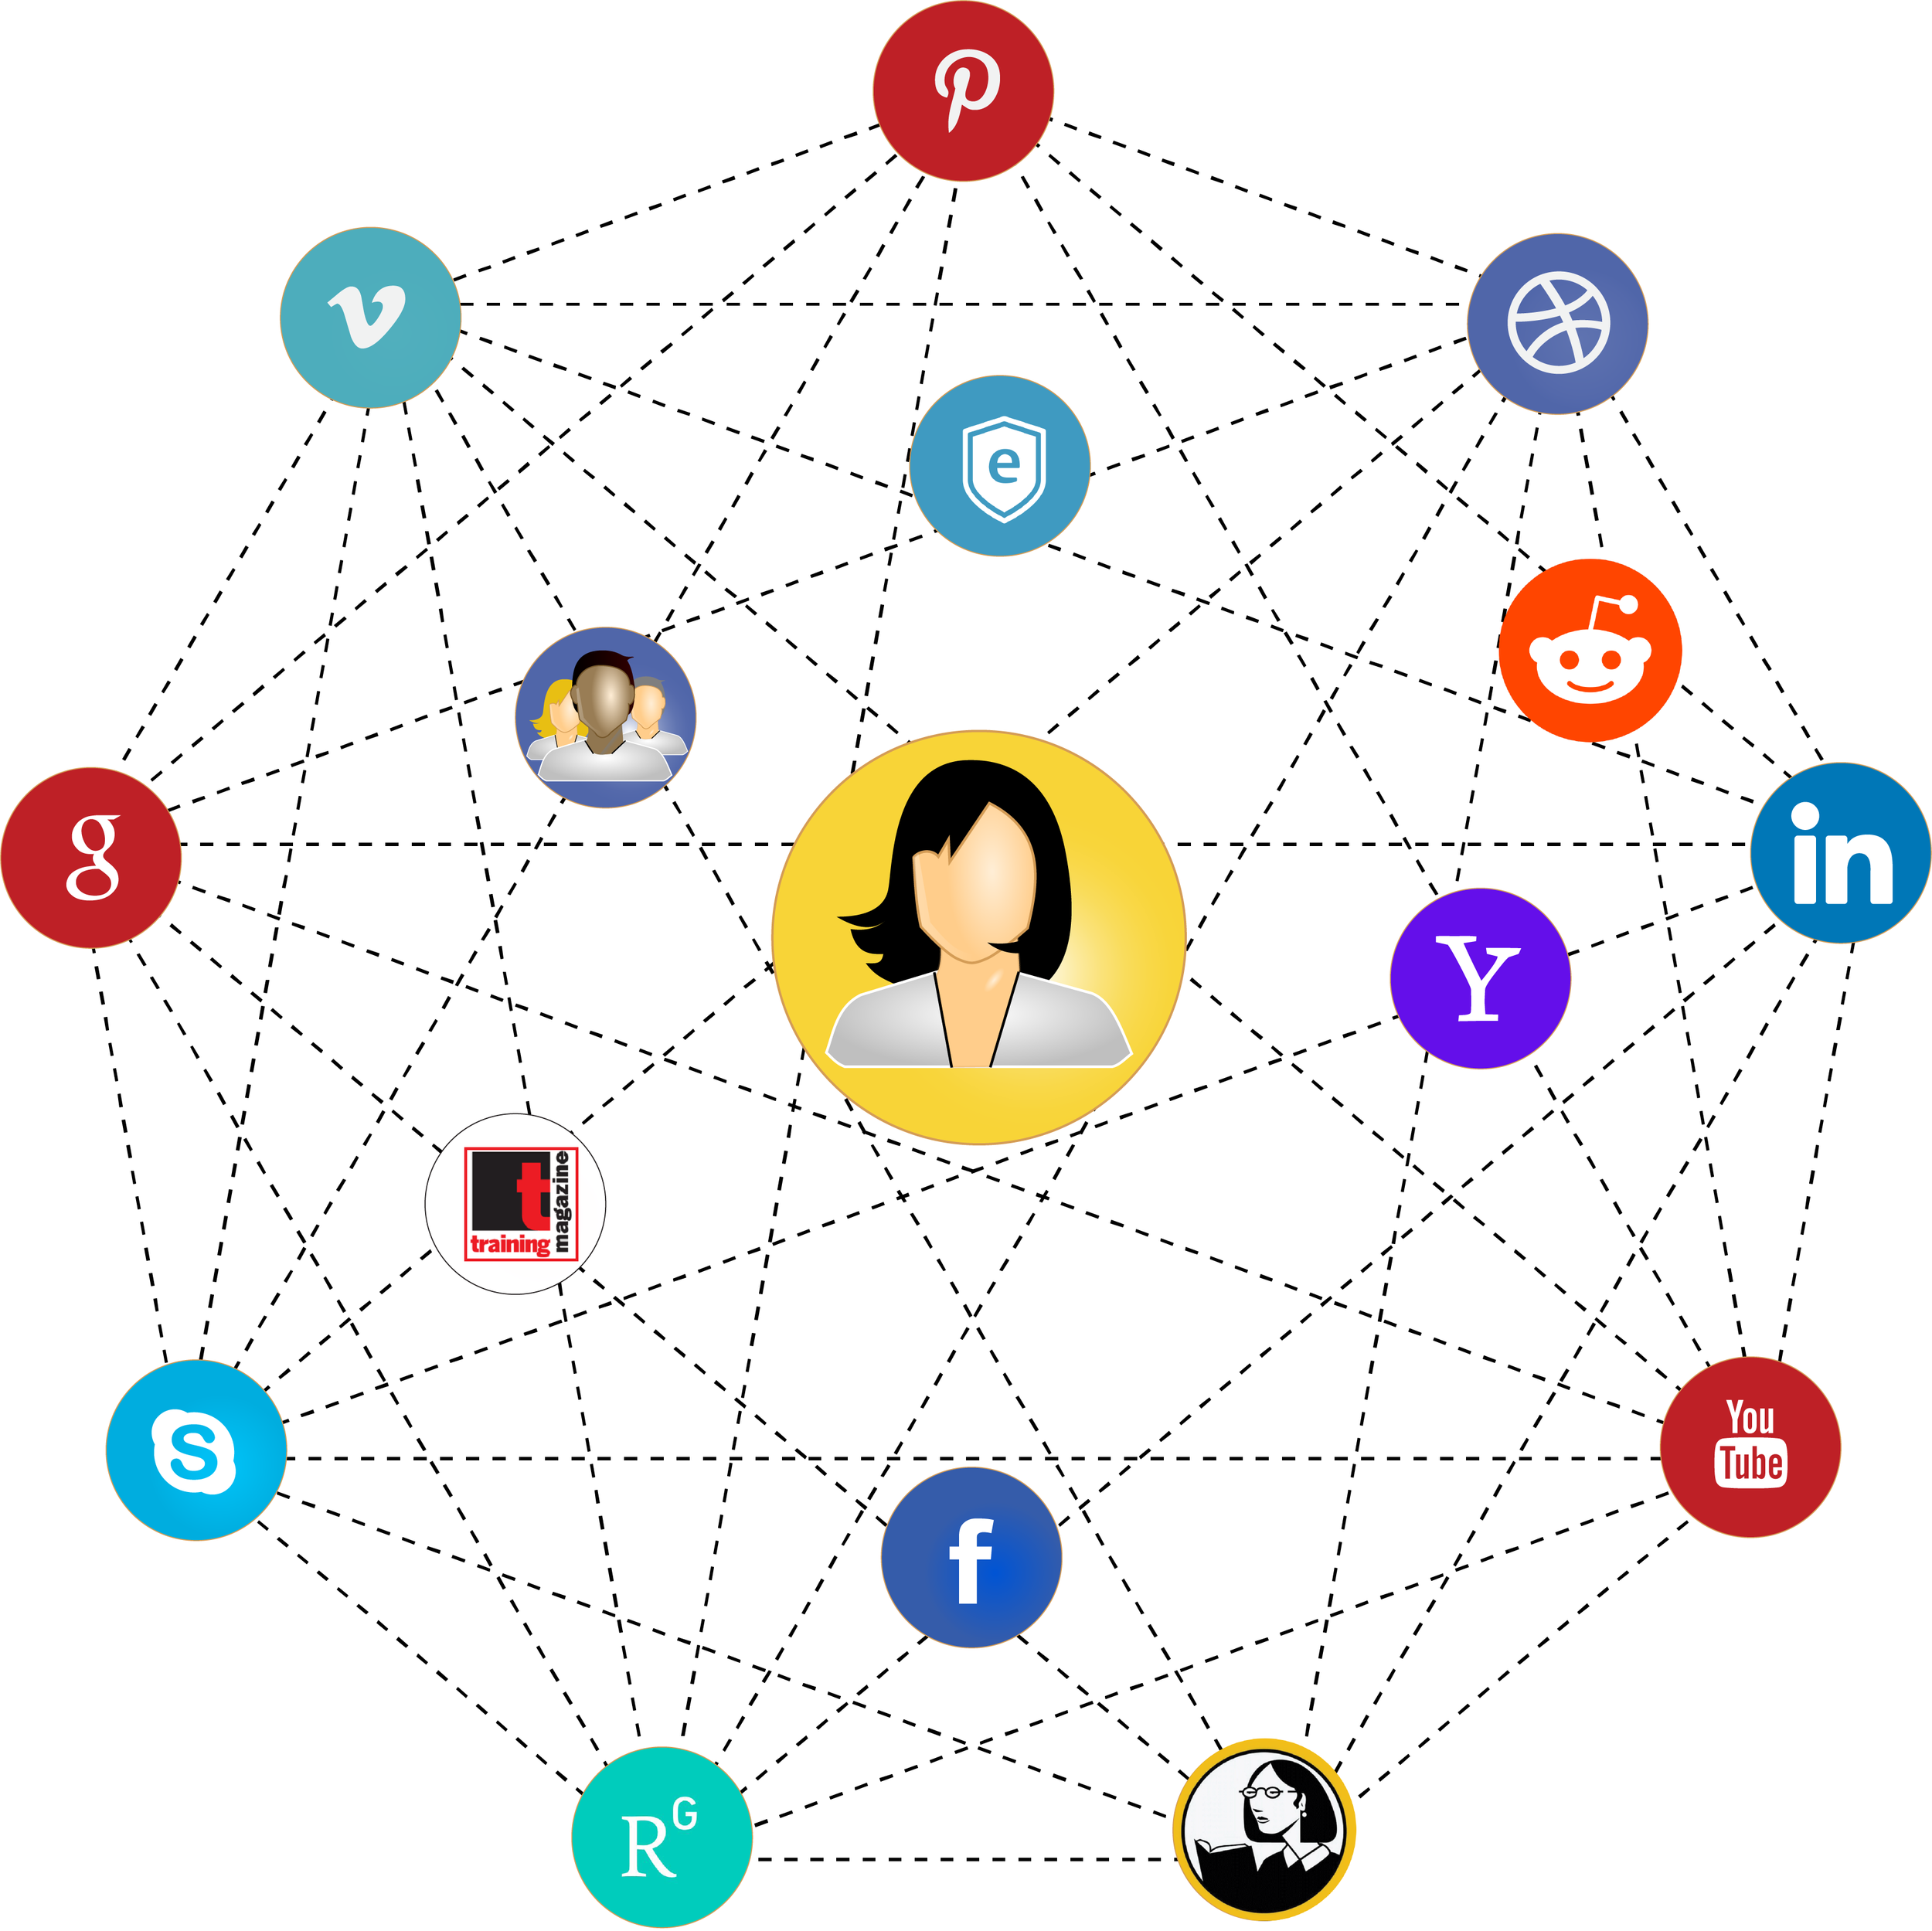 Figure 1: Deanna Ooley's current Personal Learning Network